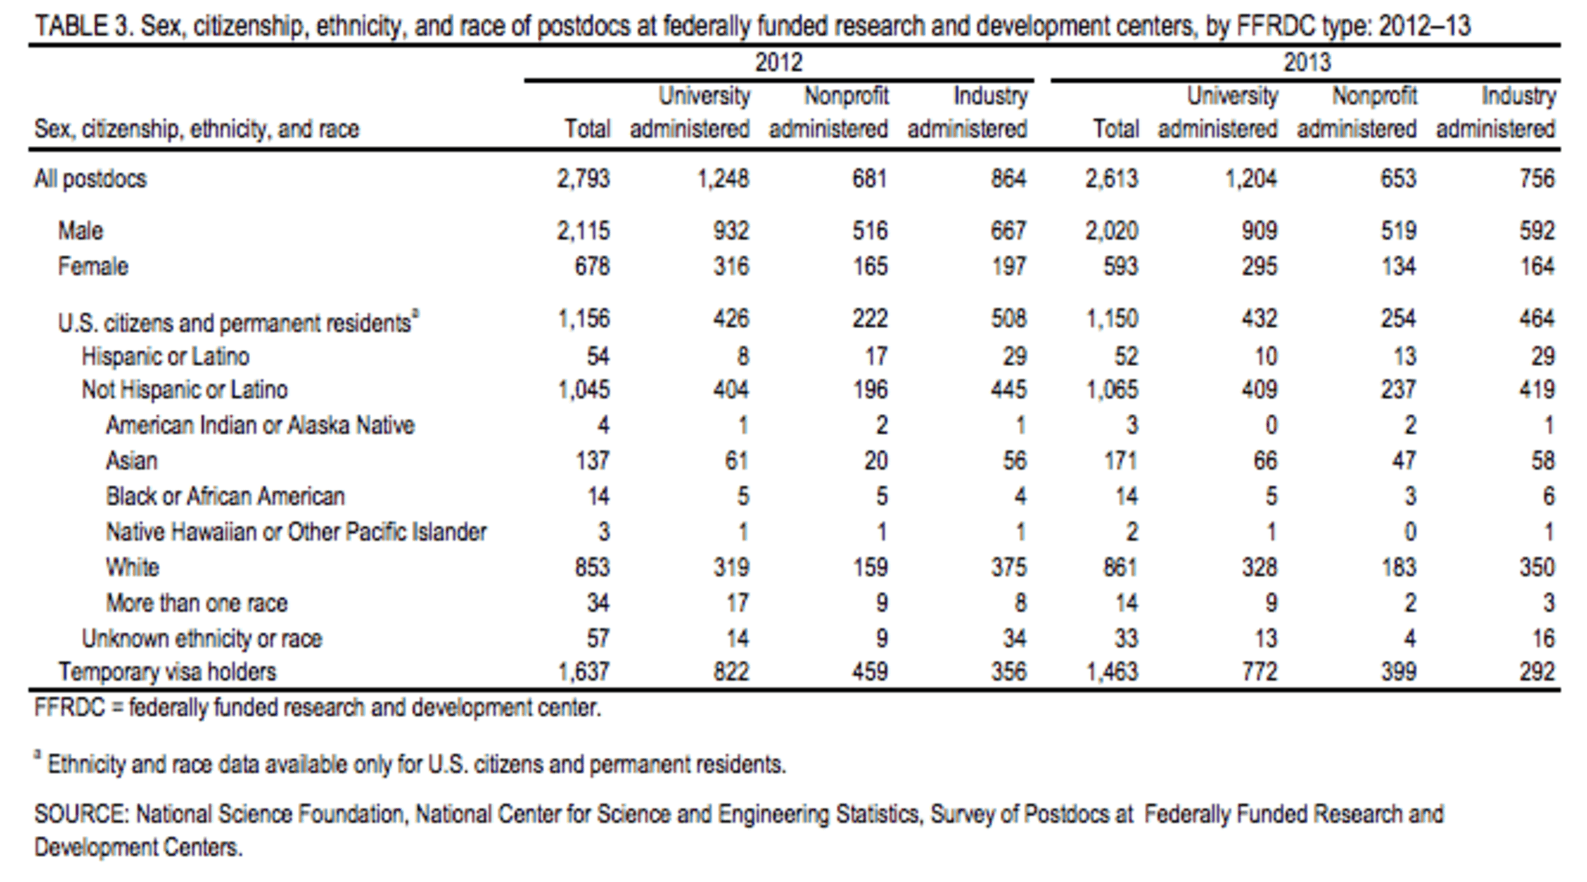 early career researchers the missing link for stem diversity the the total number of postdoctoral researchers those who have recently earned their phd at federally funded research centers dropped between 2012 and 2013